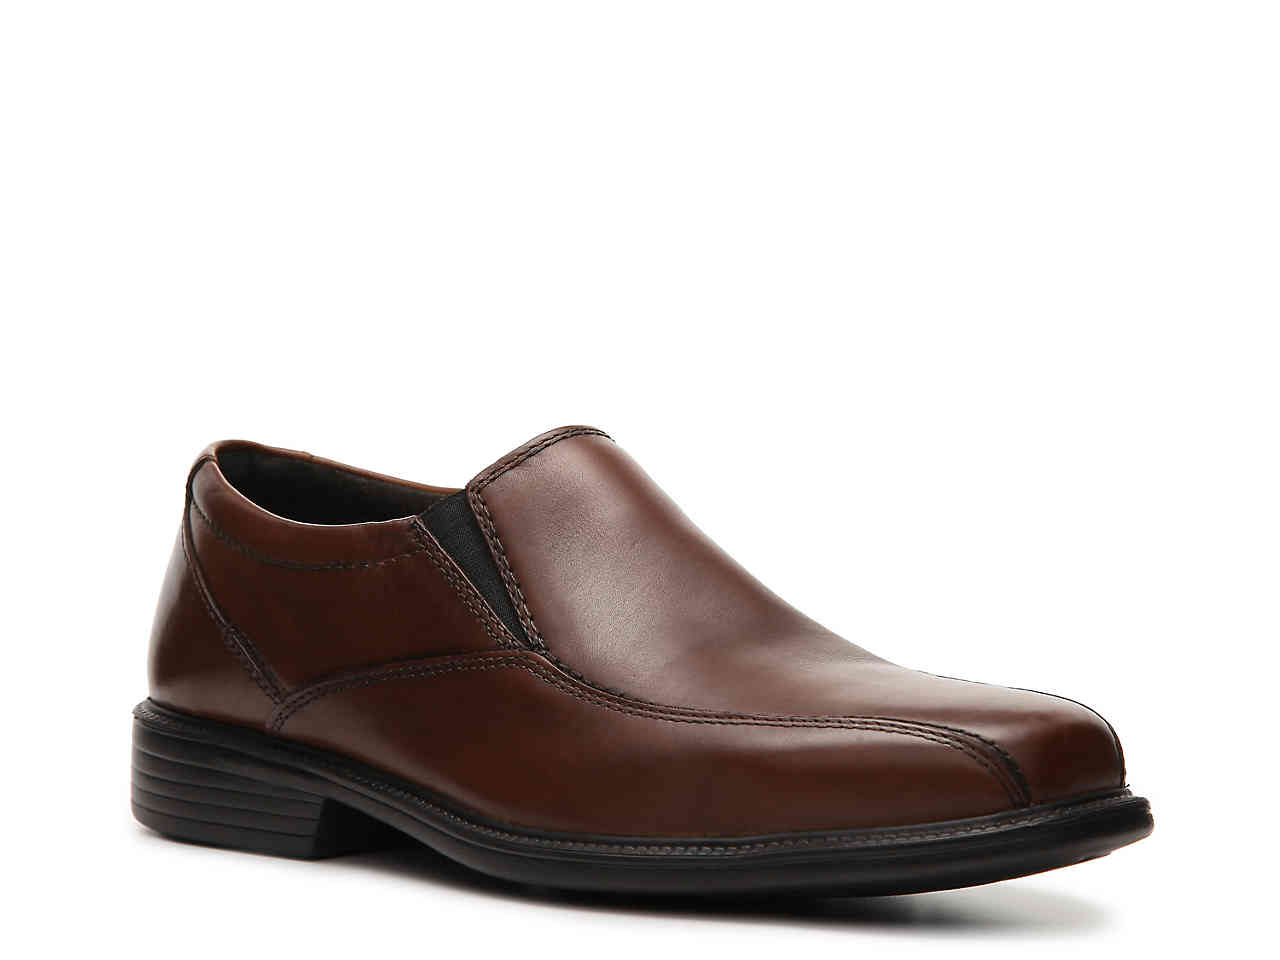 comfort shoes bolton slip-on kfybark